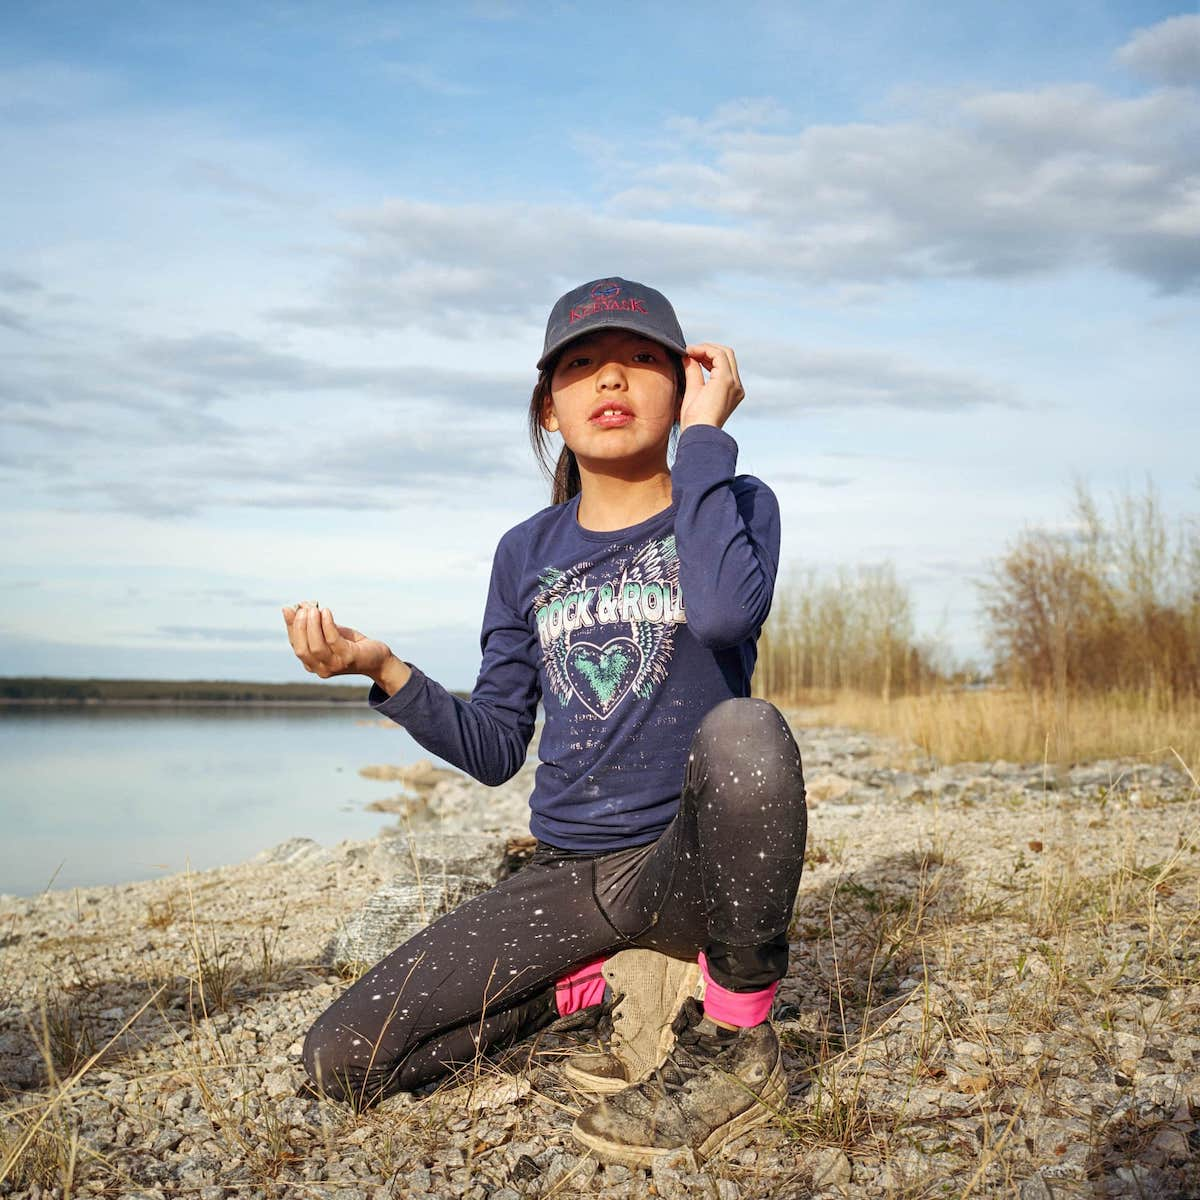 Aalaiyah wears a Keeyask dam hat while she plays on riprap-enforced river banks that surround the community of Split Lake